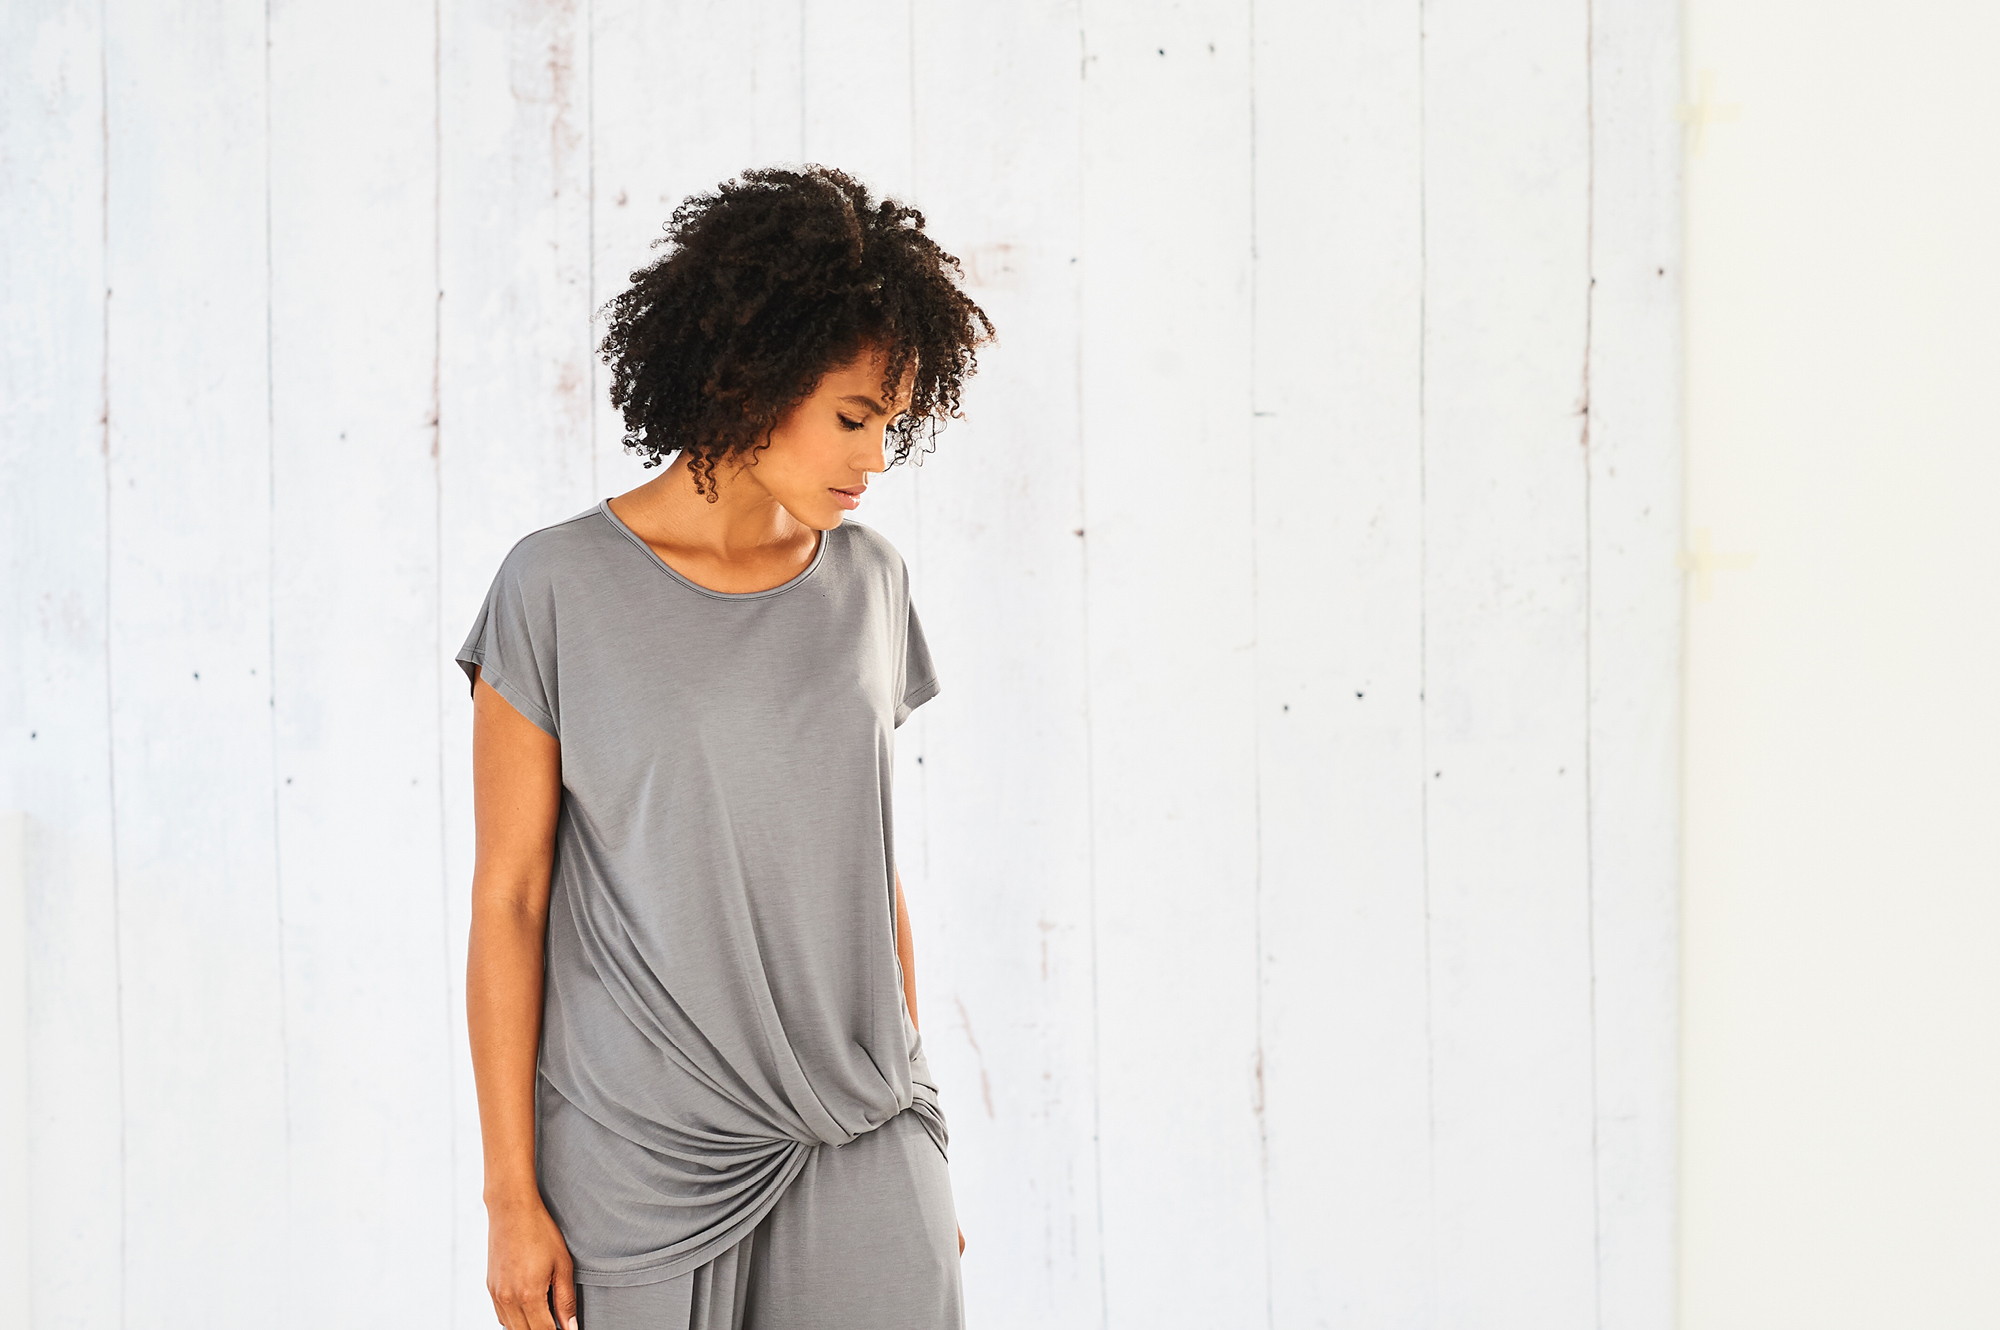 The Drape Knot tee is one of Cucumber-founder Eileen Willett's go-to working from home pieces